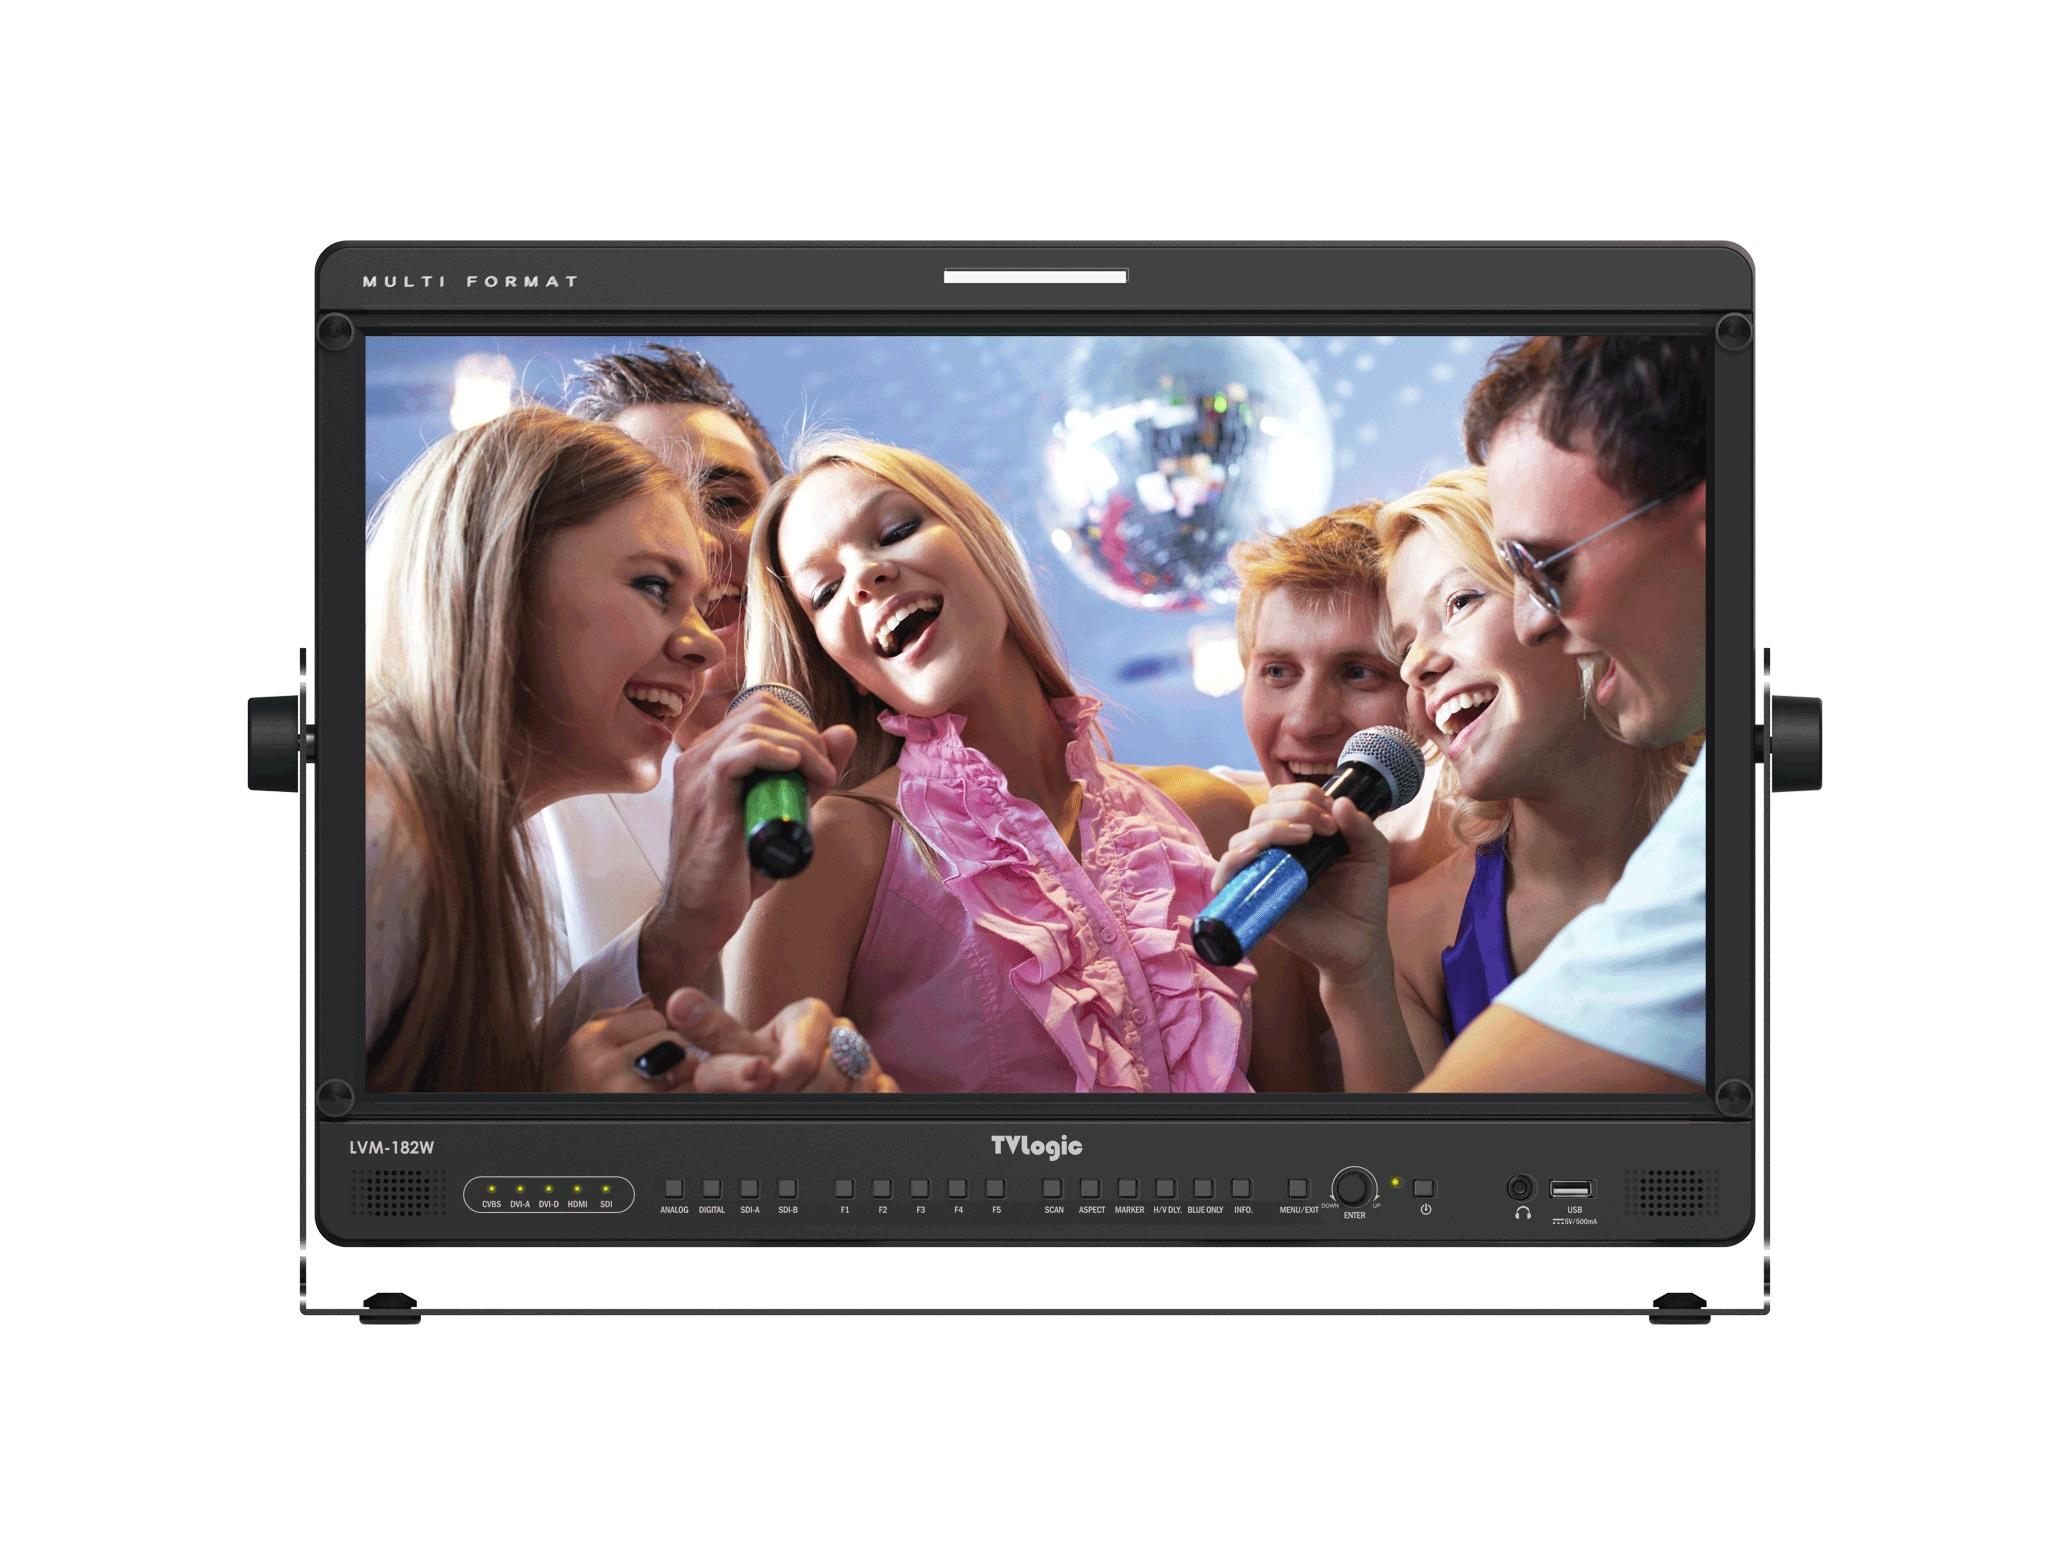 TVlogic LVM-182W-A 18.5 inch 3G-SDI/DVI/HDMI Entry-Level Full-Featured 1366x768 Wide Viewing IPS LCD Monitor